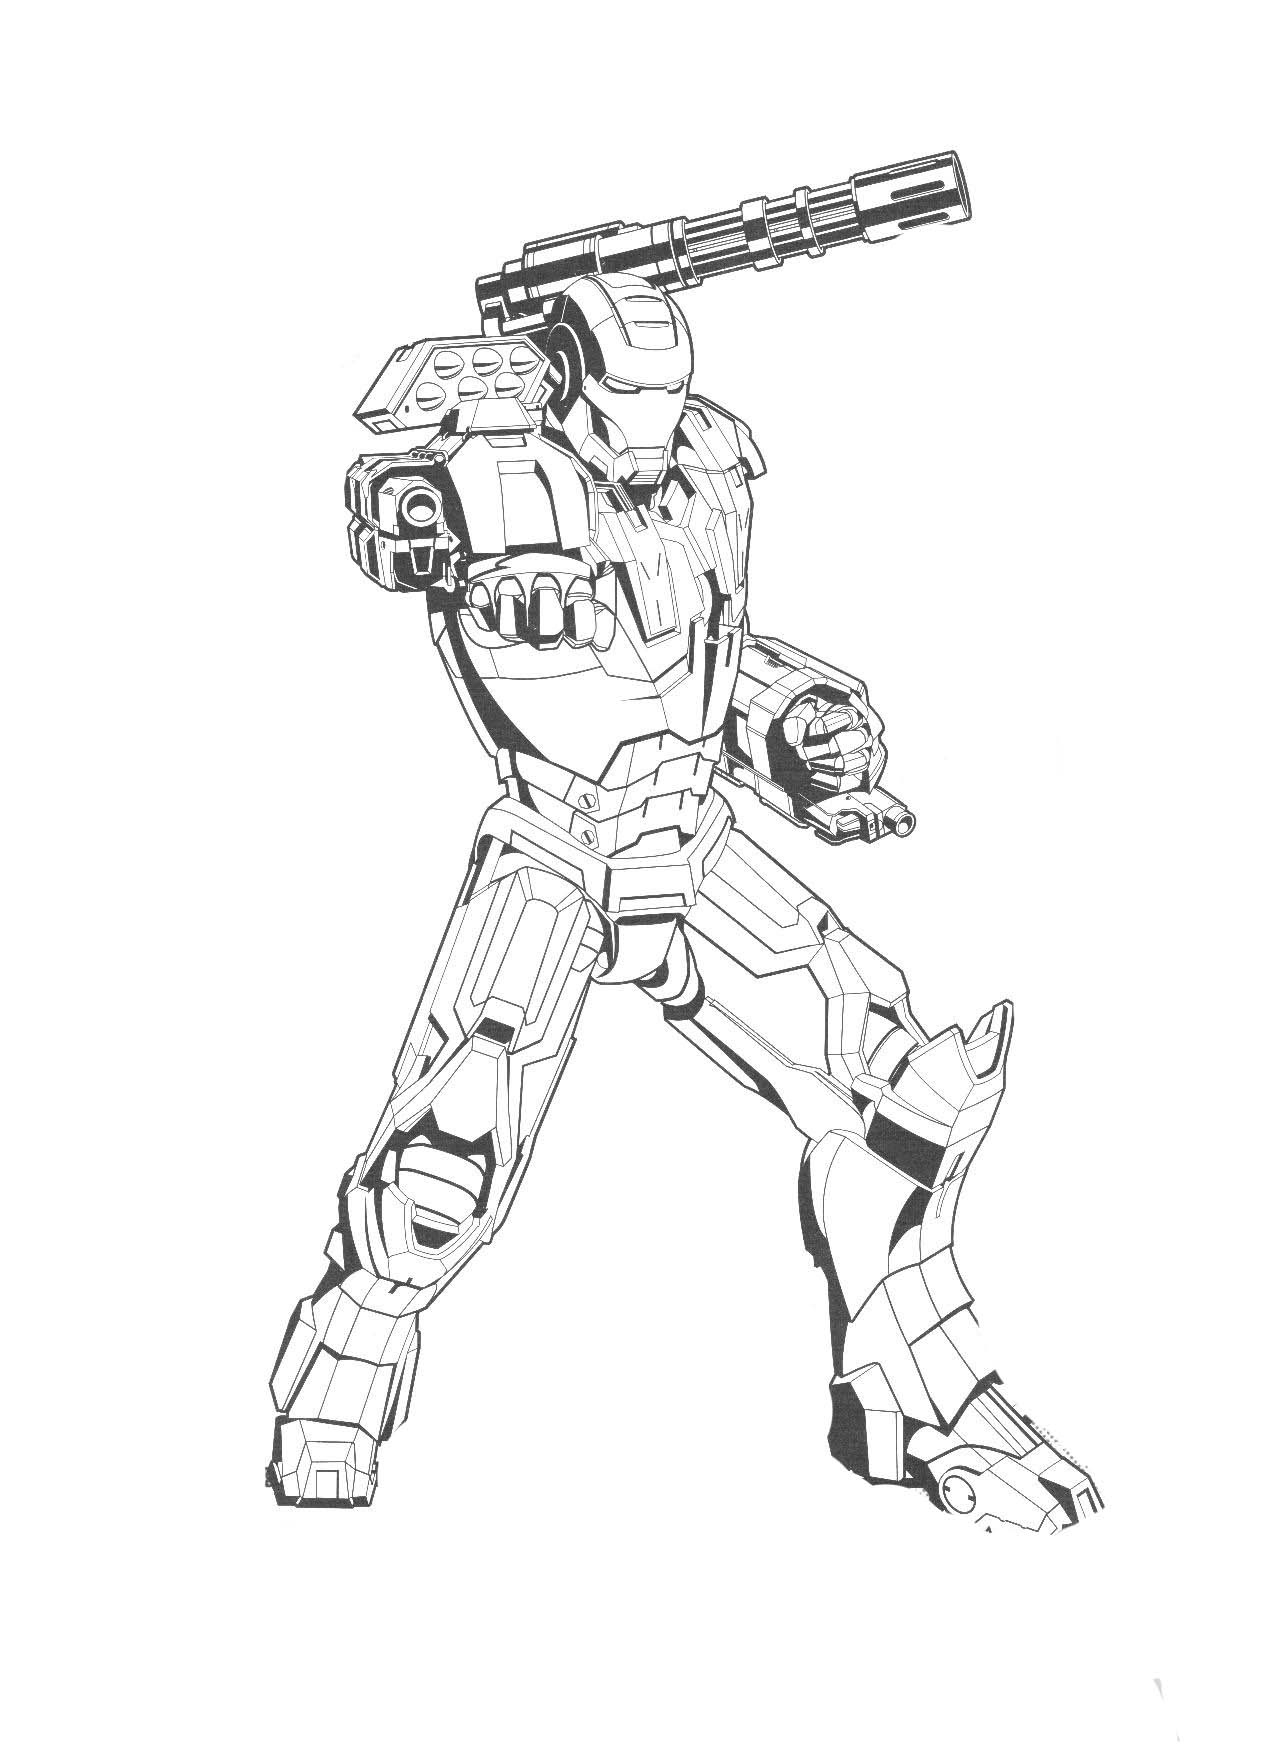 iron man images to colour iron man coloring pages printable best gift ideas blog colour man iron images to